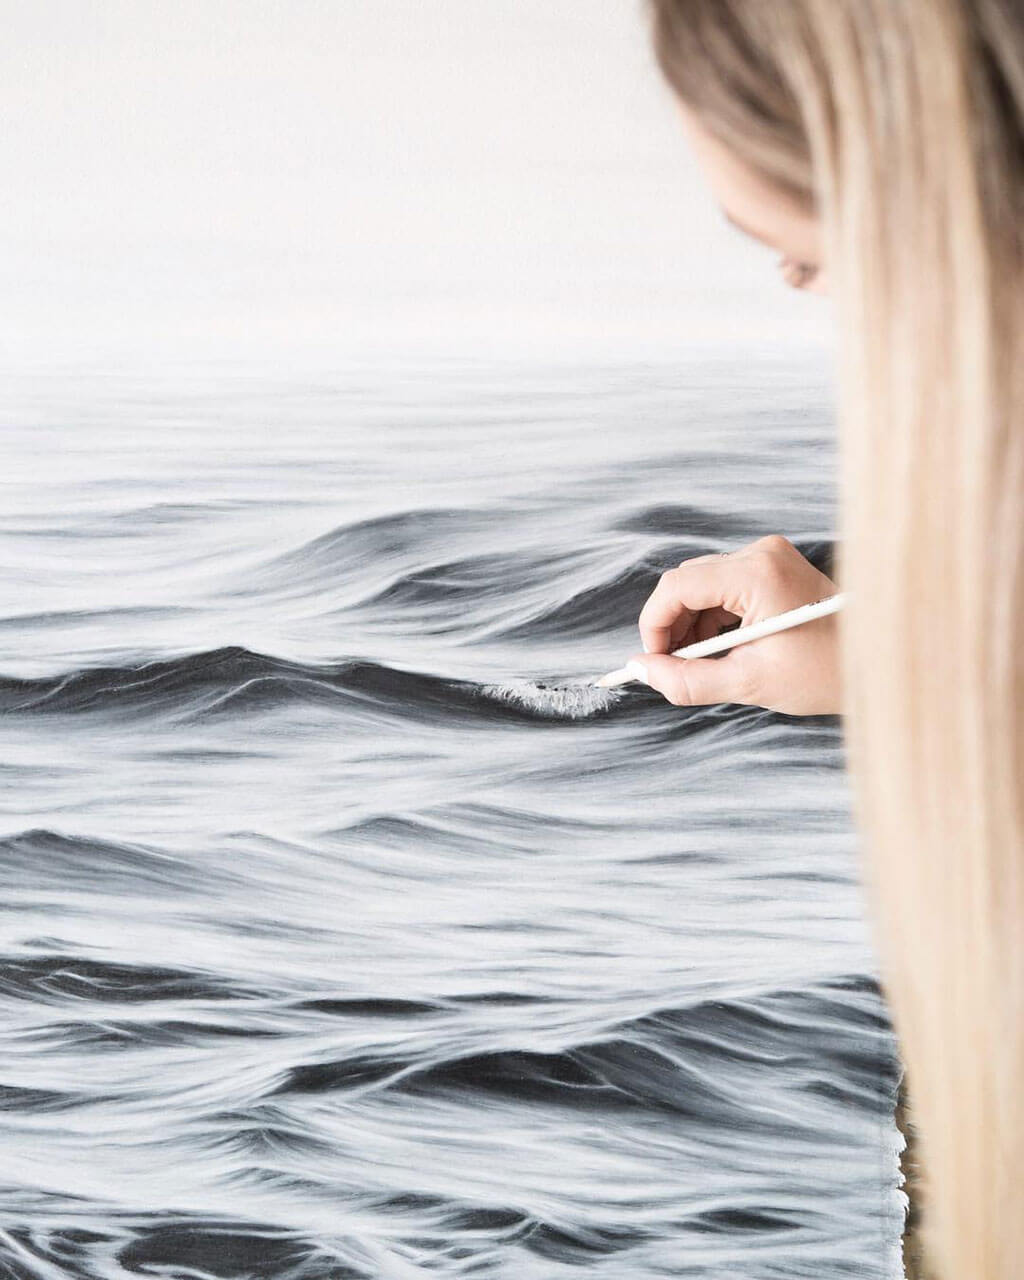 Hyper-realistic coloured pencil drawings